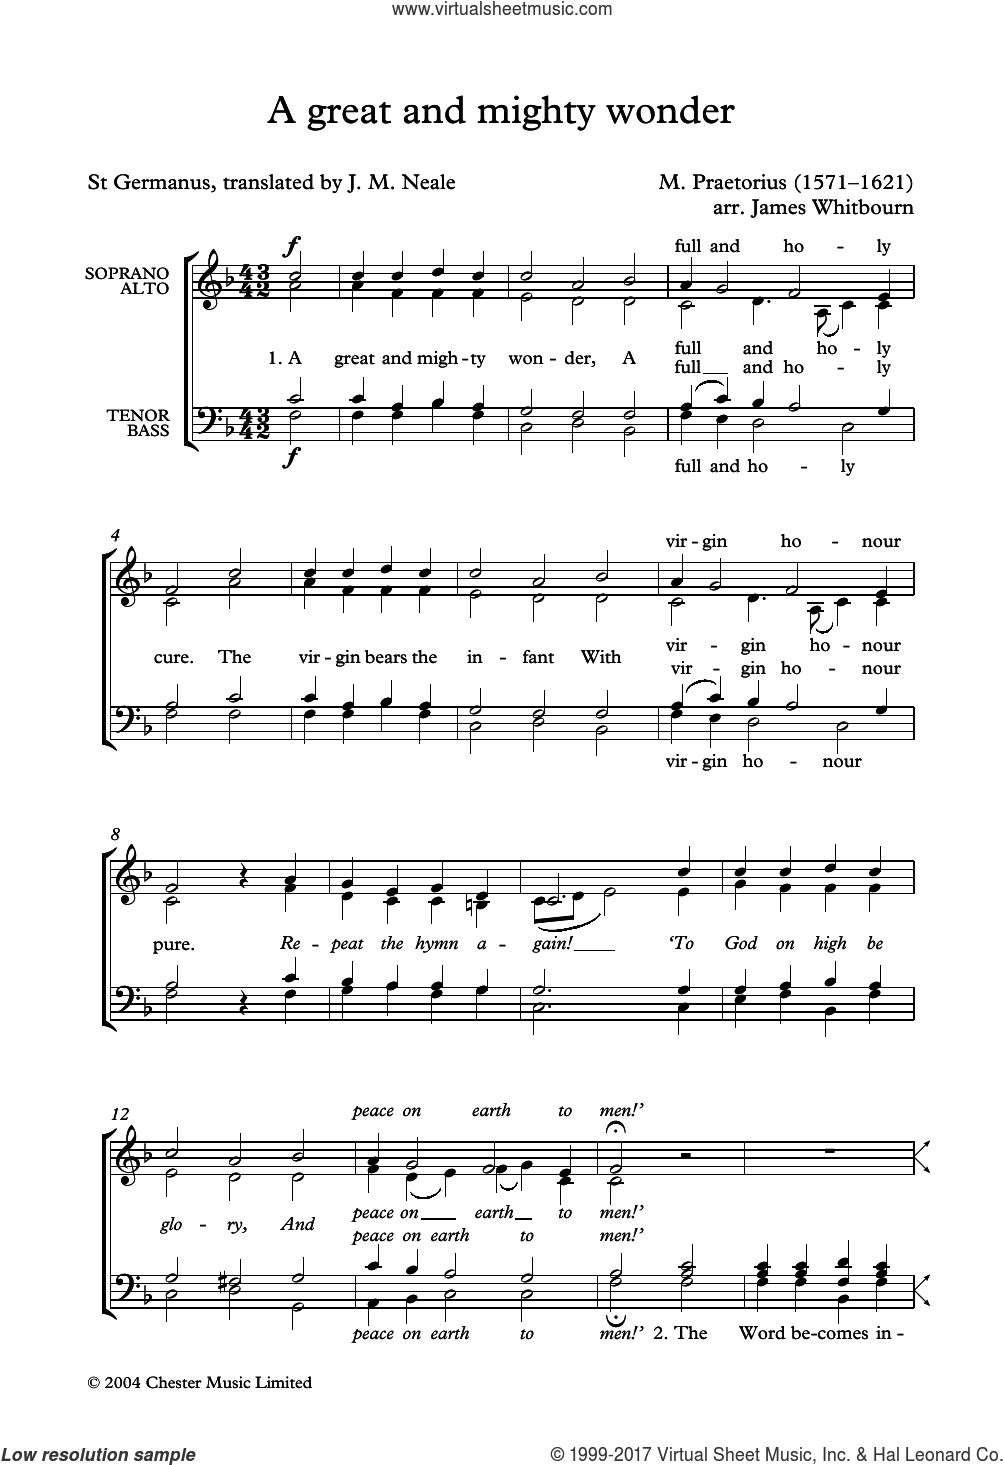 A Great and Mighty Wonder (arr. James Whitbourn) sheet music for choir (SATB: soprano, alto, tenor, bass) by Michael Praetorius, James Whitbourn and John Mason Neale, intermediate